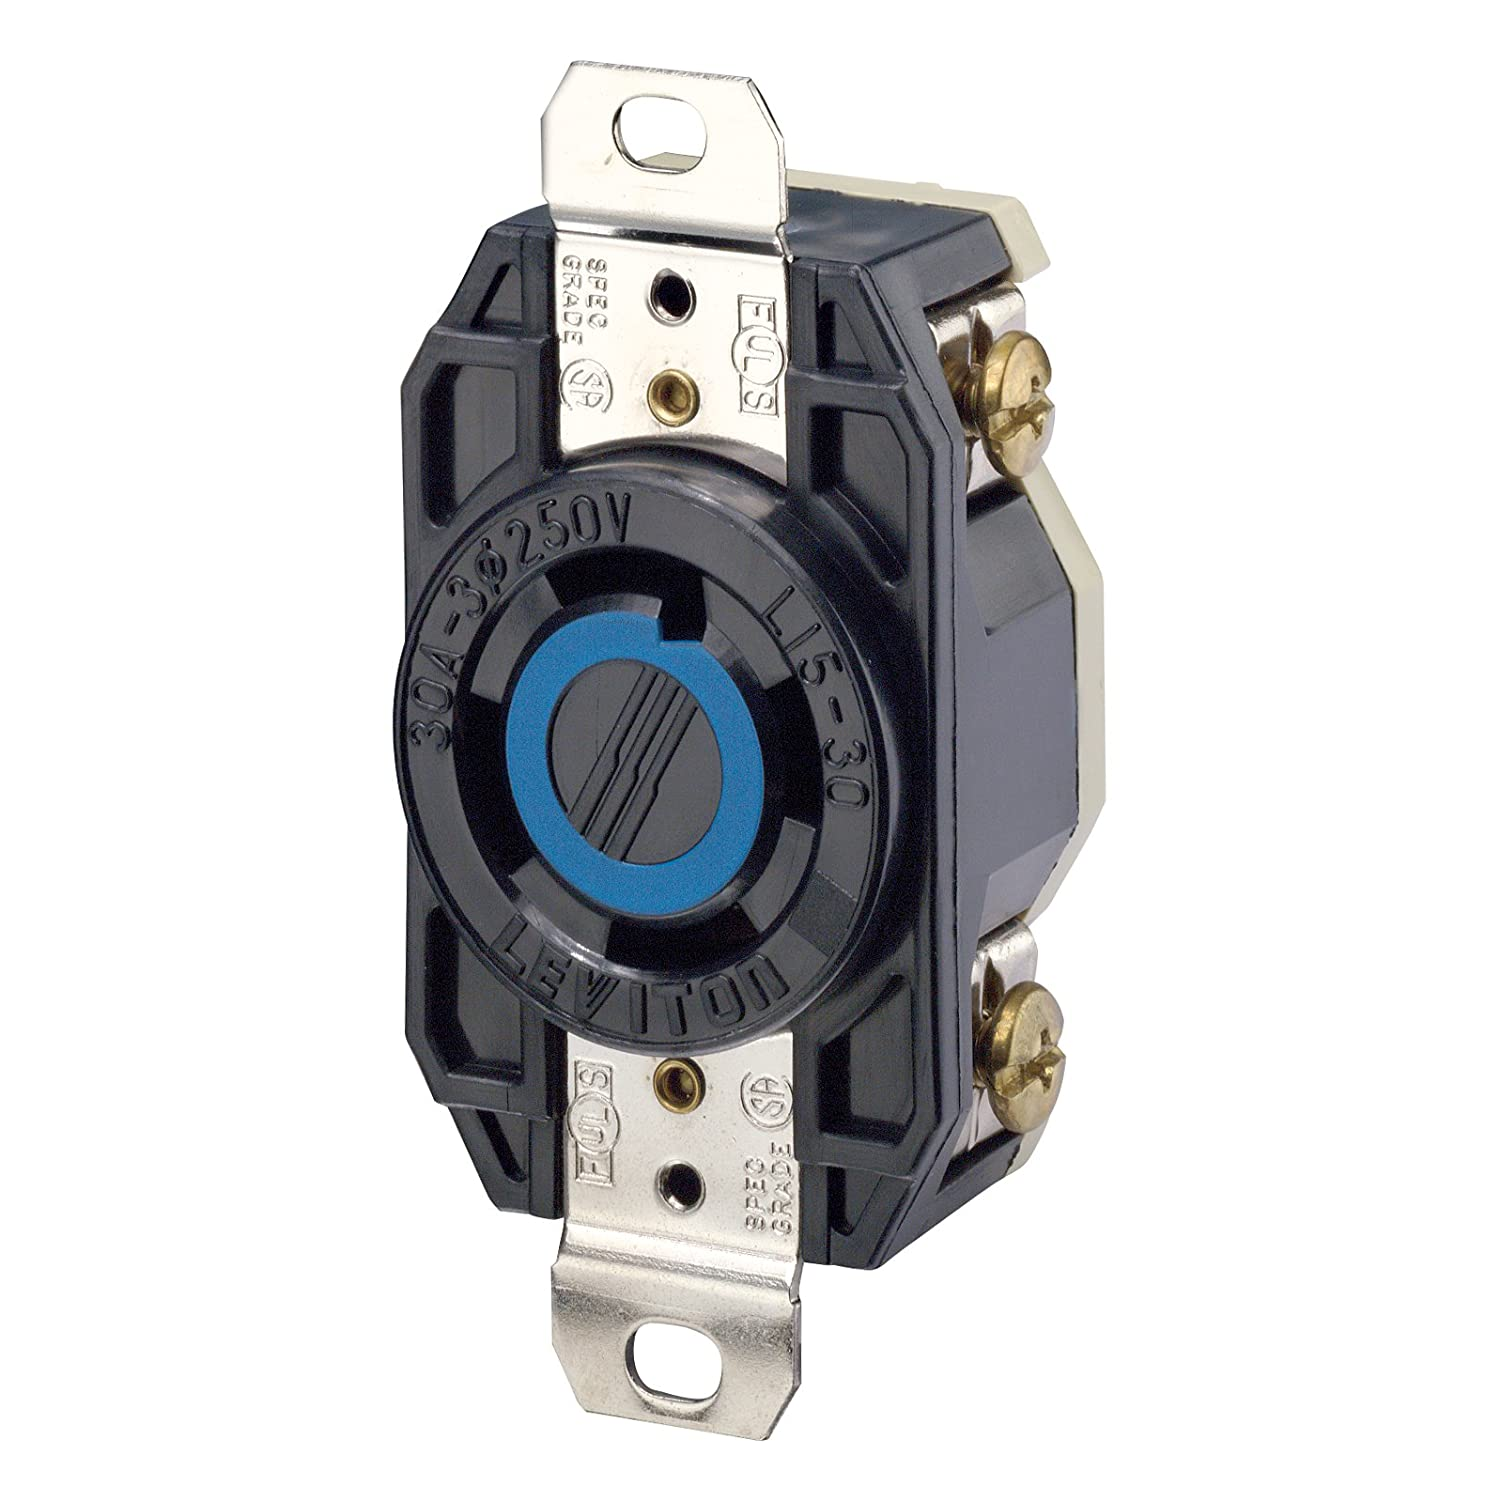 Leviton 2720 30 Amp, 250 Volt 3-Phase, Flush Mounting Locking ...